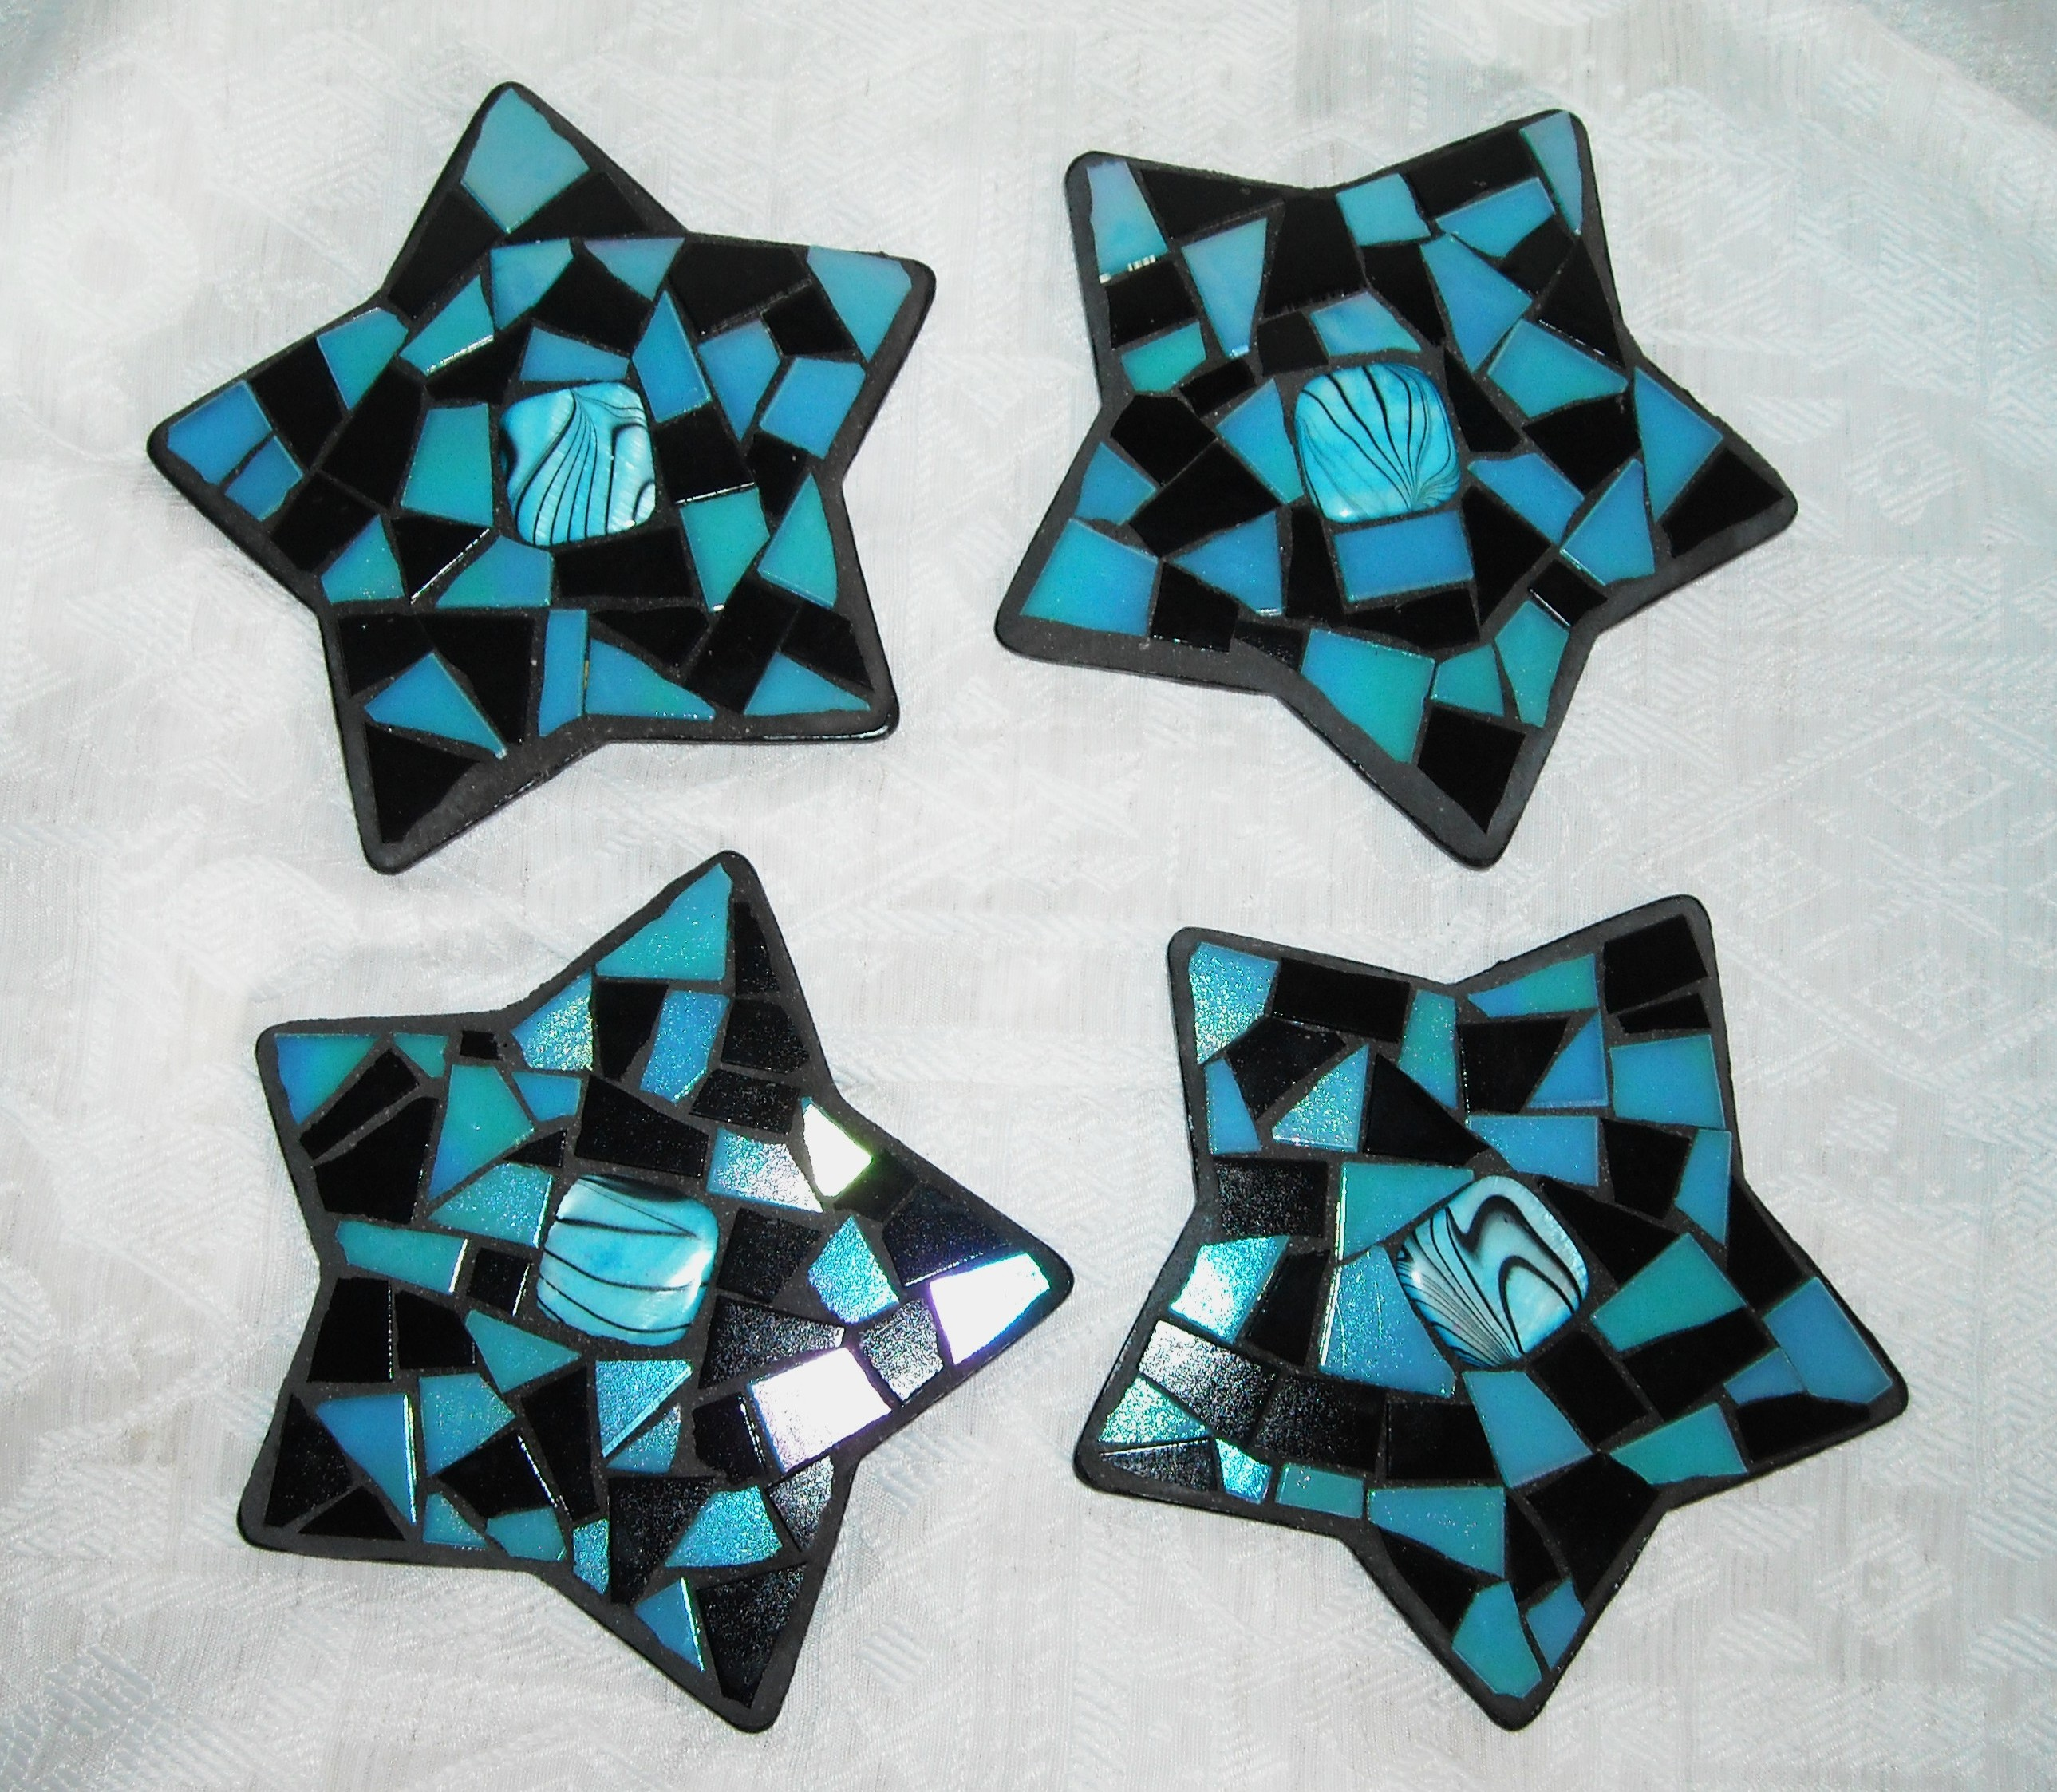 Turquoise black star coasters